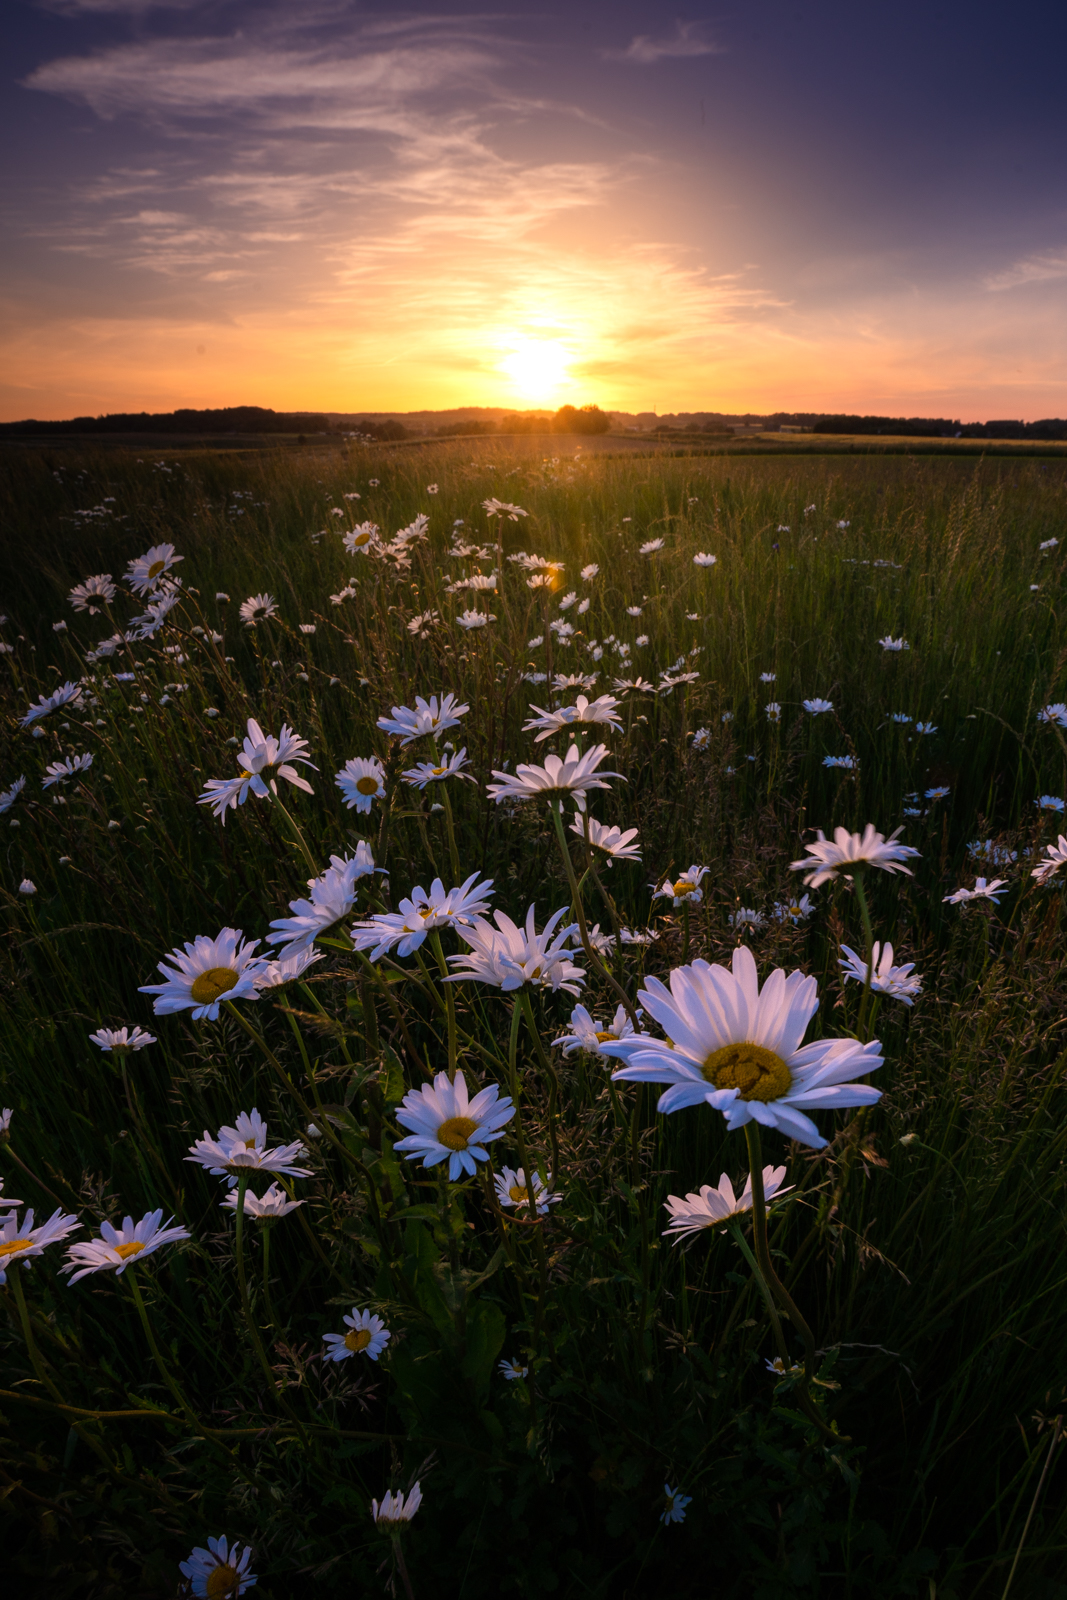 Wildflowers in the fields around Leefdaal, Belgium (Flemish Brabant province) at sunset